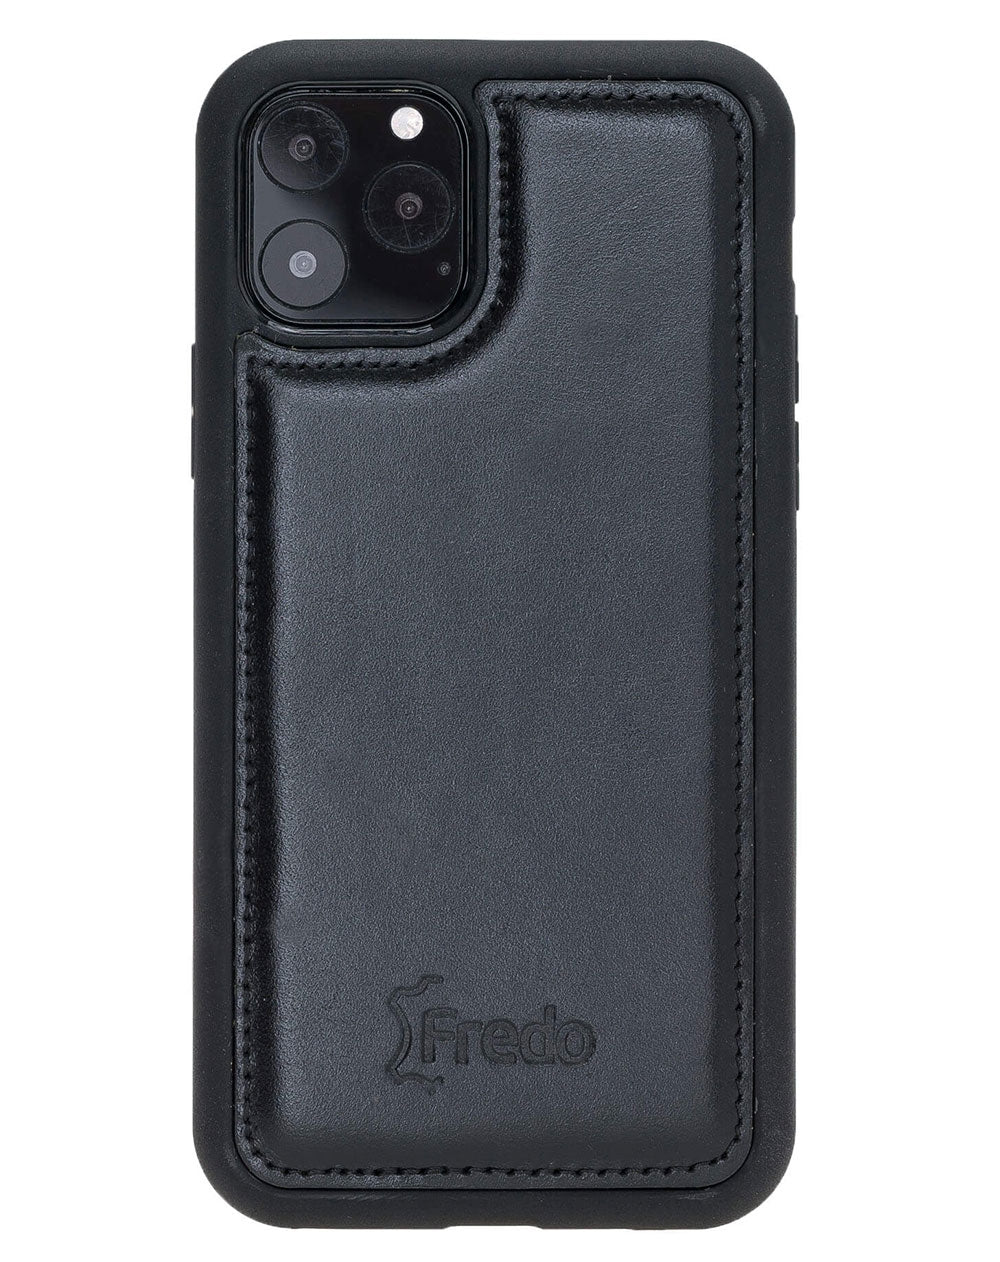 iPhone 11 Pro Max 6.5 Zoll Flex Ultra Slim Cover Handyhülle -Schwarz-0